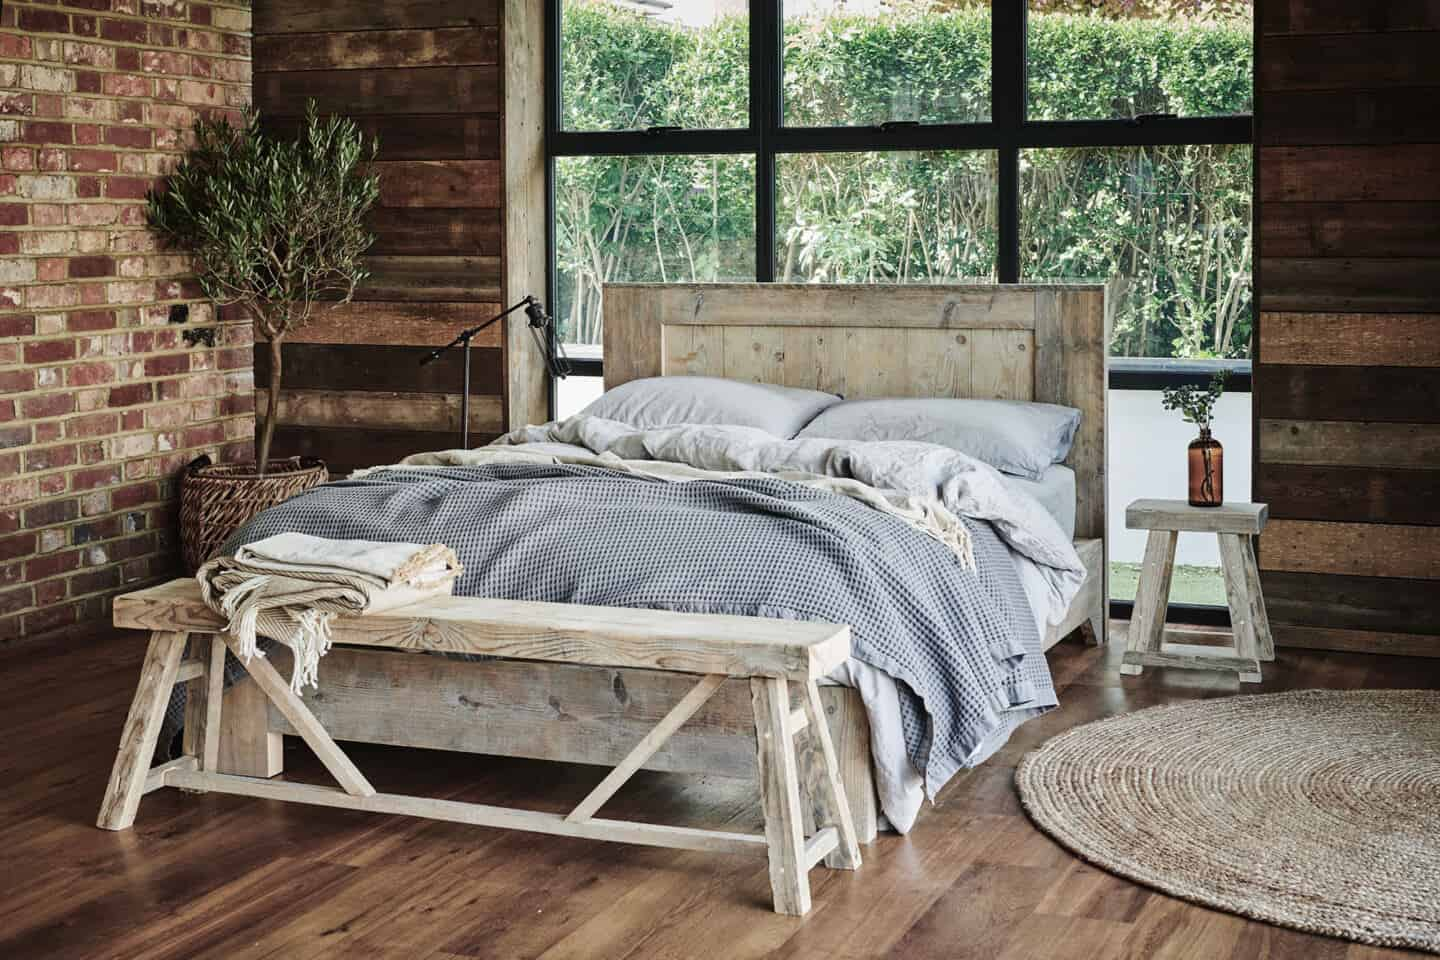 A double bed and two benches made from reclaimed wood which is a great material for sustainable interior design